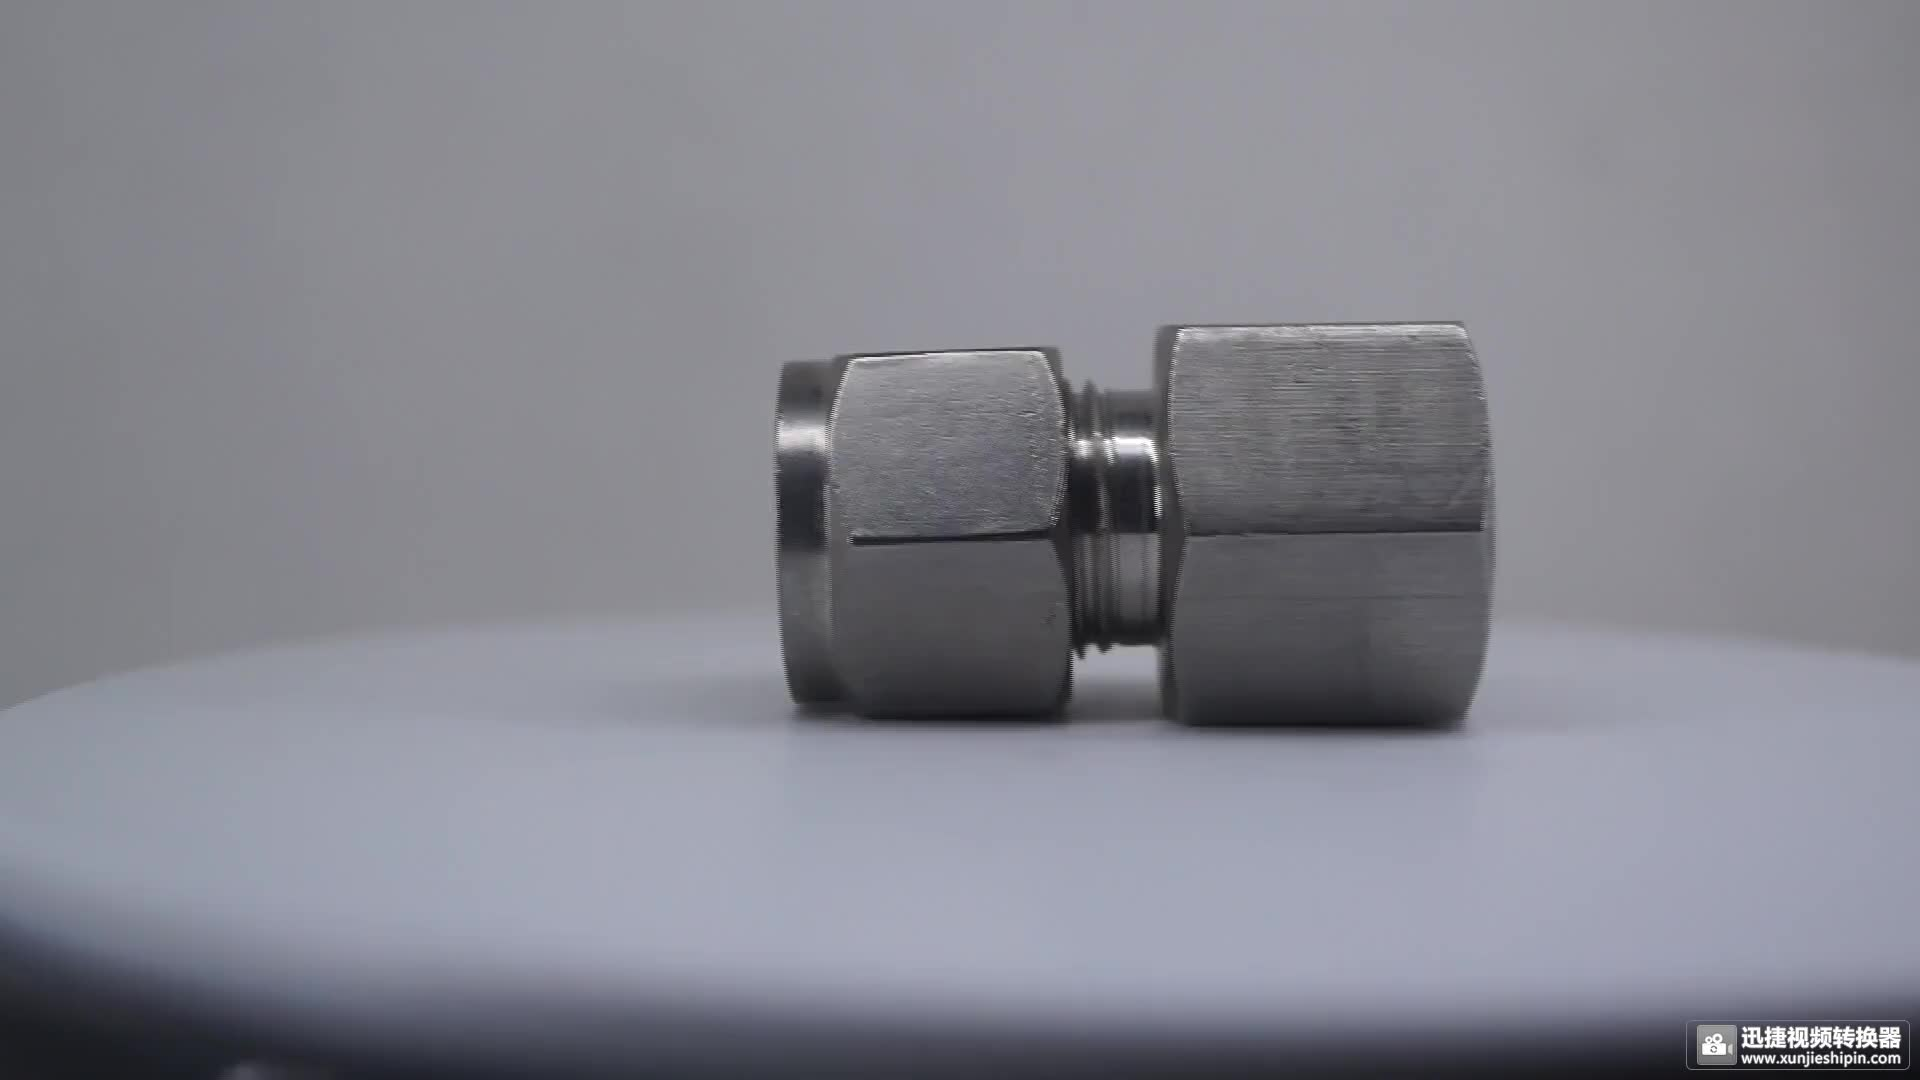 Stainless steel 316 Double ferrules compression high pressure pipe fittings